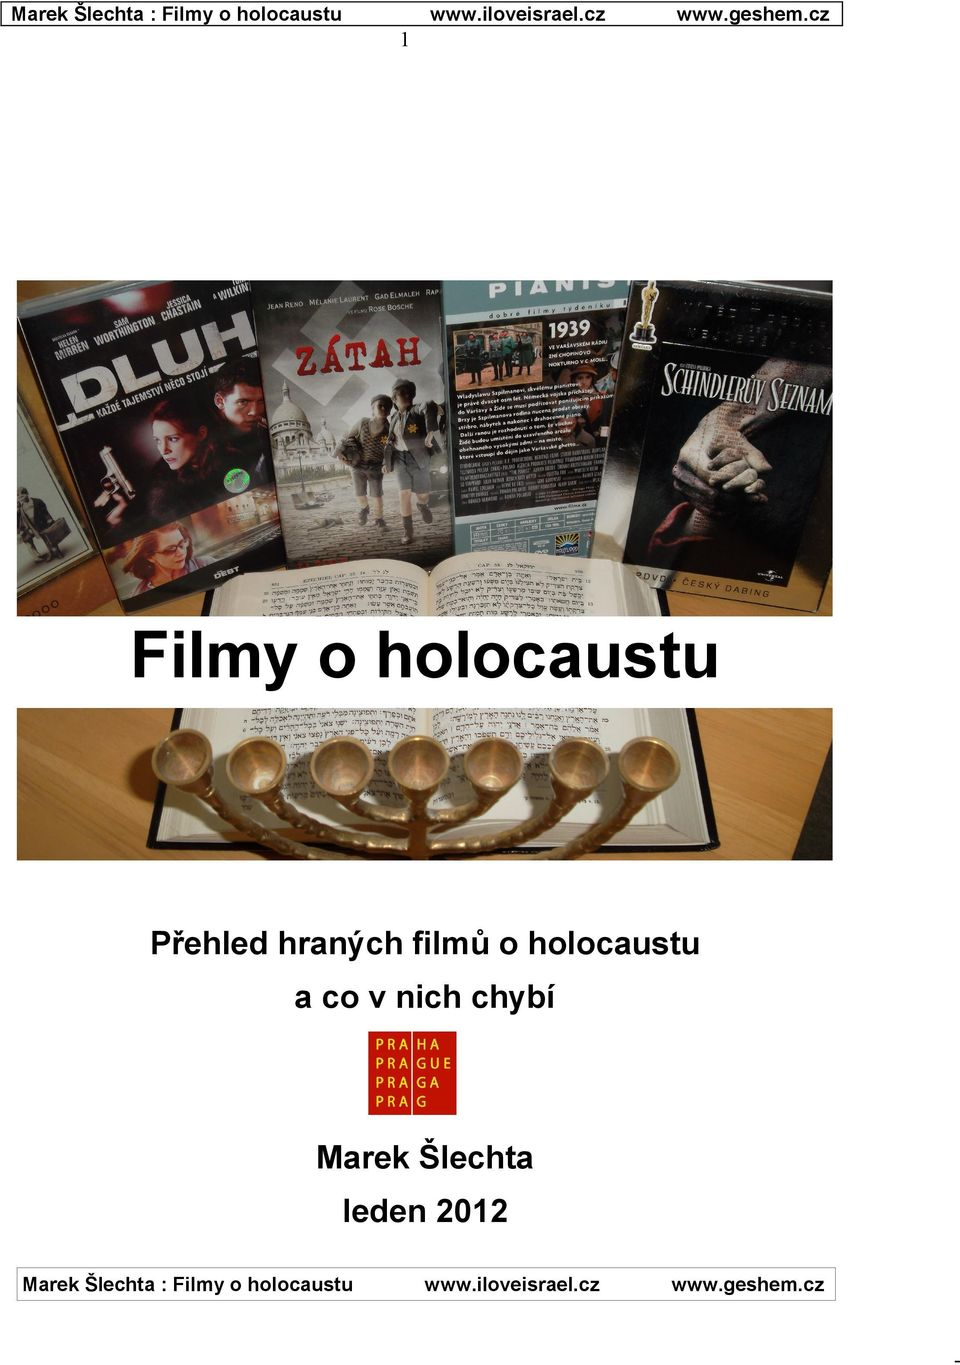 holocaustu a co v nich